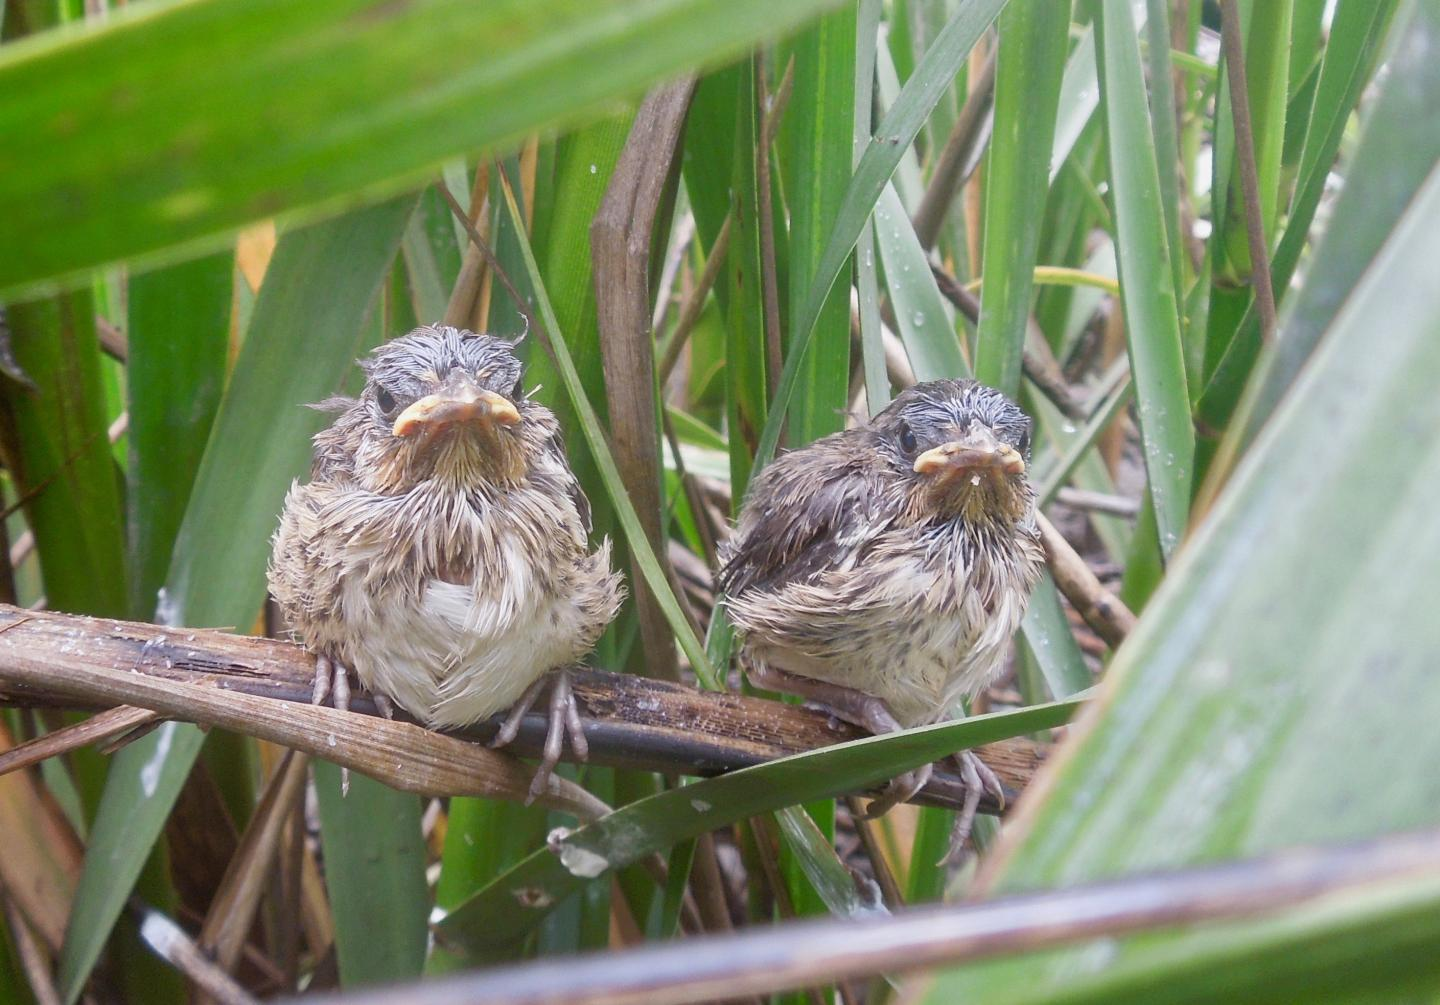 two small birds with feathers that appear slightly damp sit on branches and among blades of grass